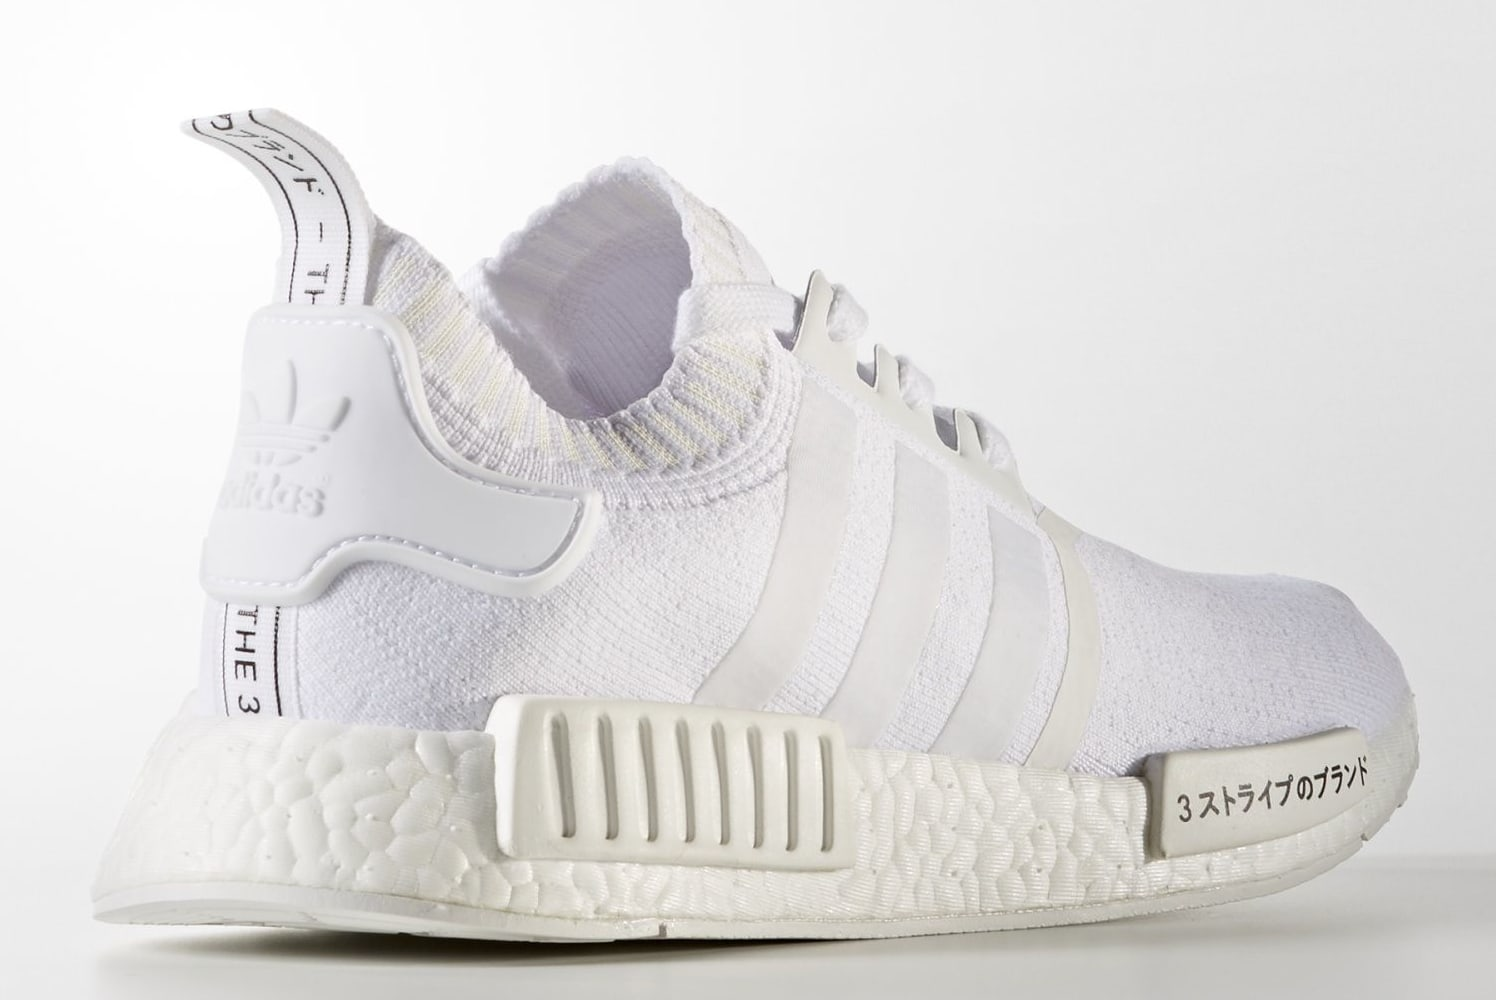 Adidas NMD_R1 PK 'Japan Pack' BZ0221 (Lateral)